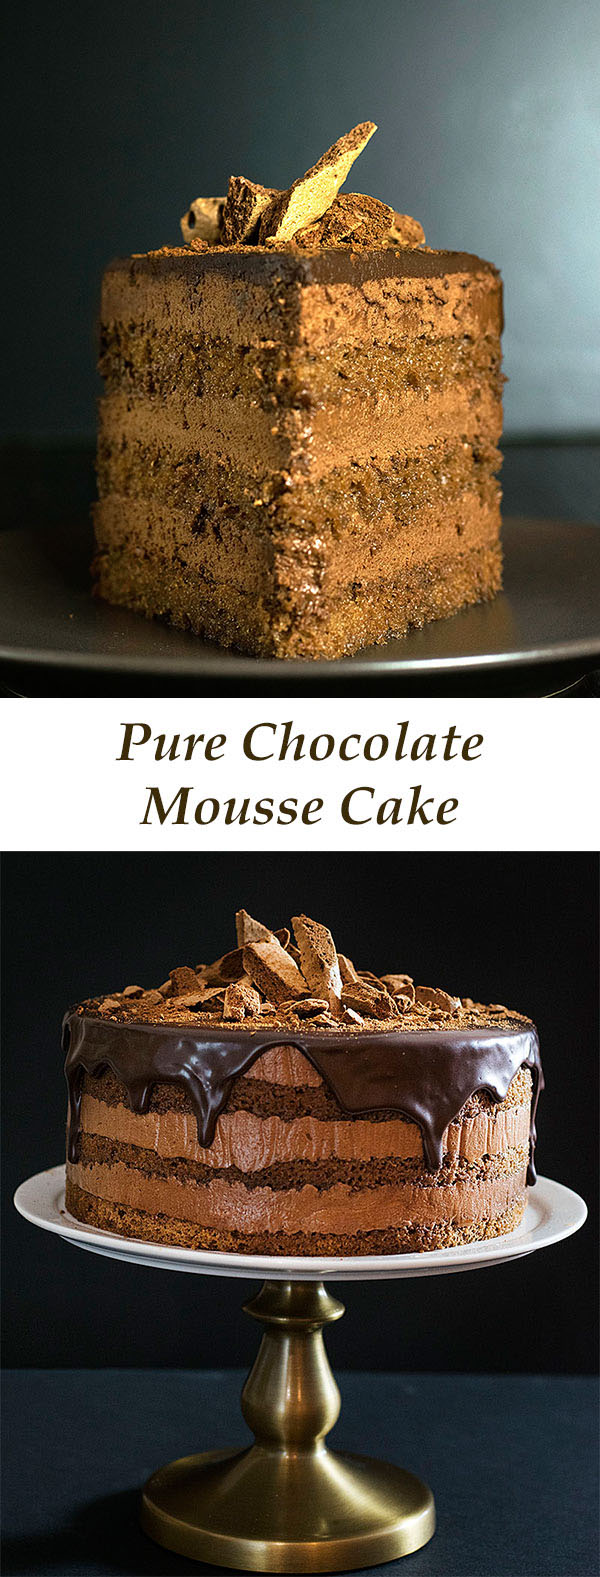 pure-chocolate-mousse-cake-4